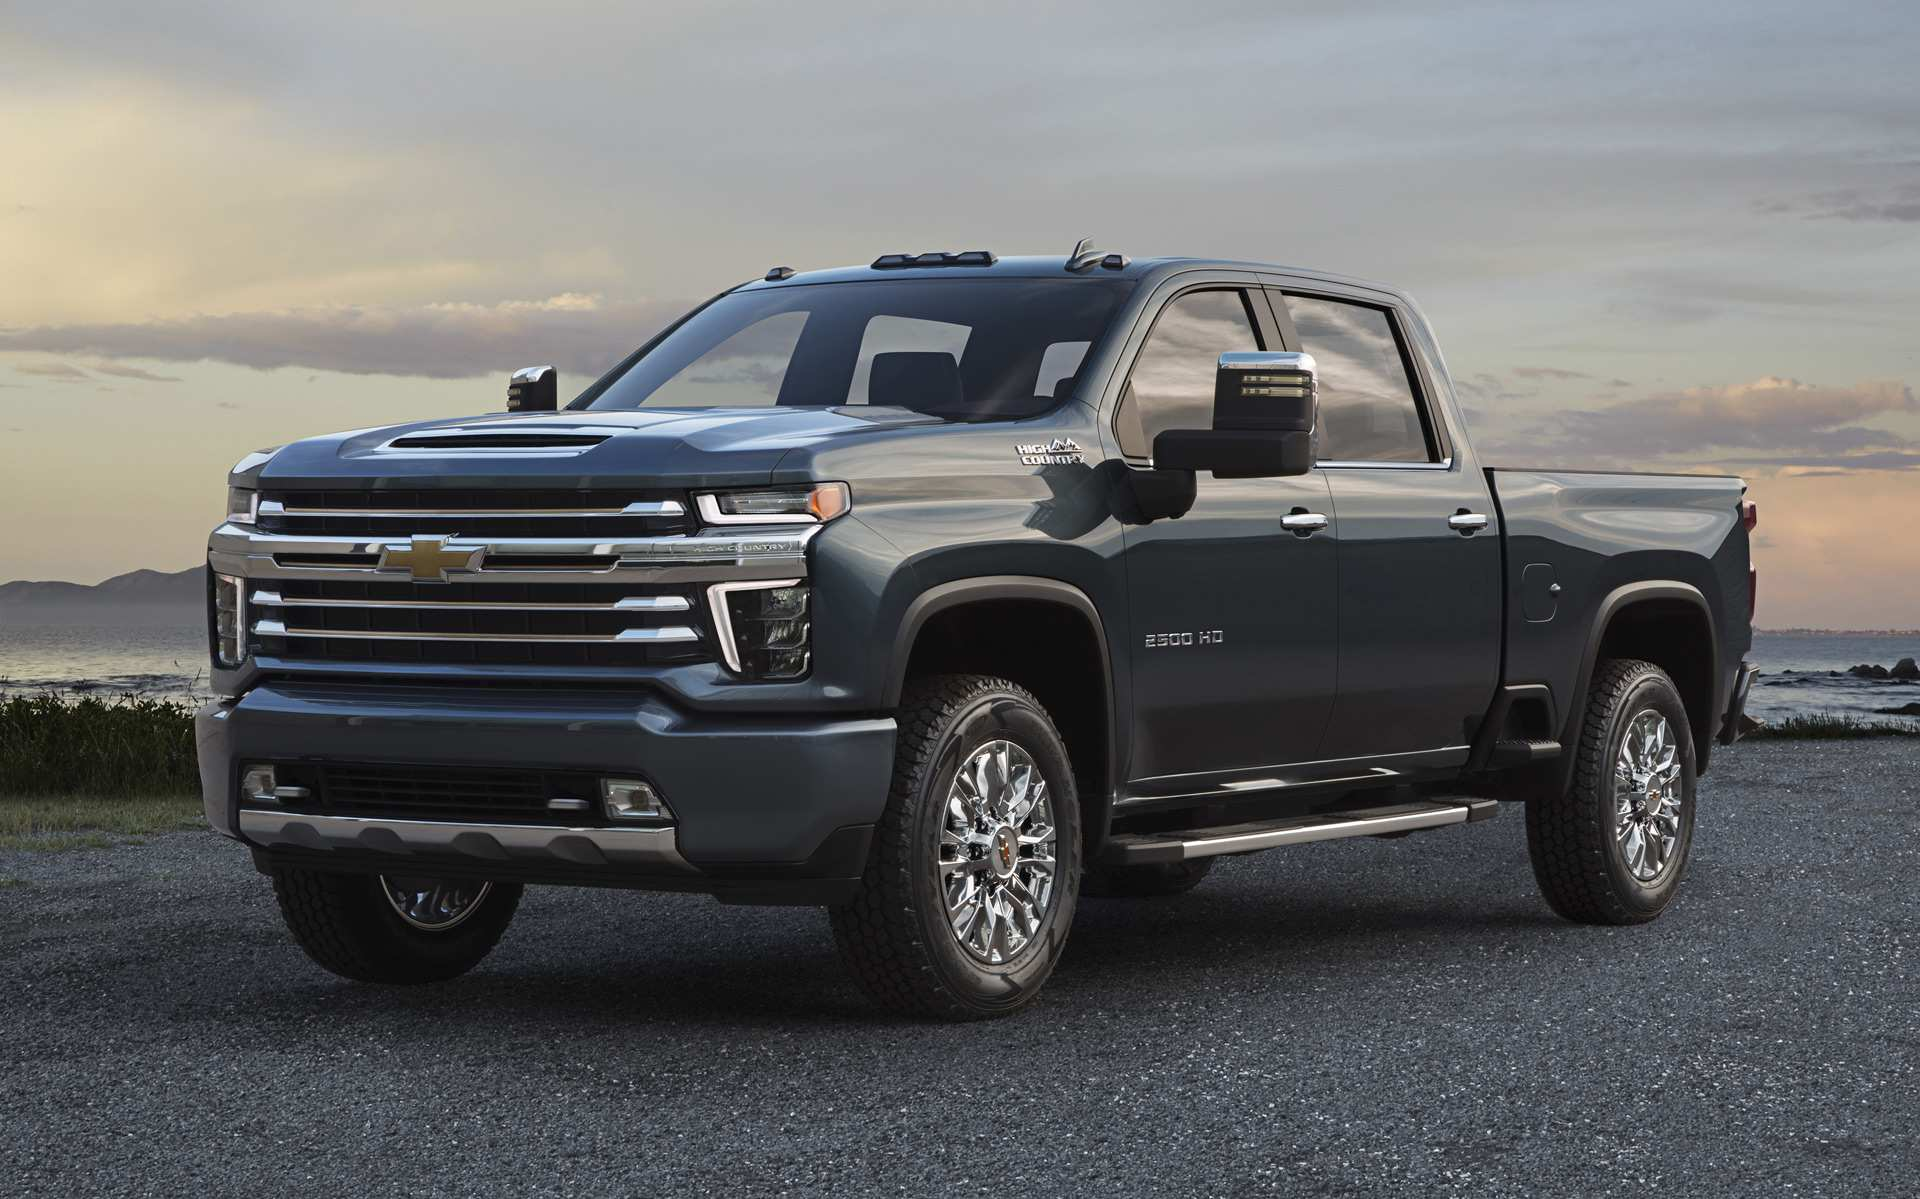 37 Concept of New 2019 Chevrolet Silverado Work Truck Concept Redesign And Review Pricing for New 2019 Chevrolet Silverado Work Truck Concept Redesign And Review